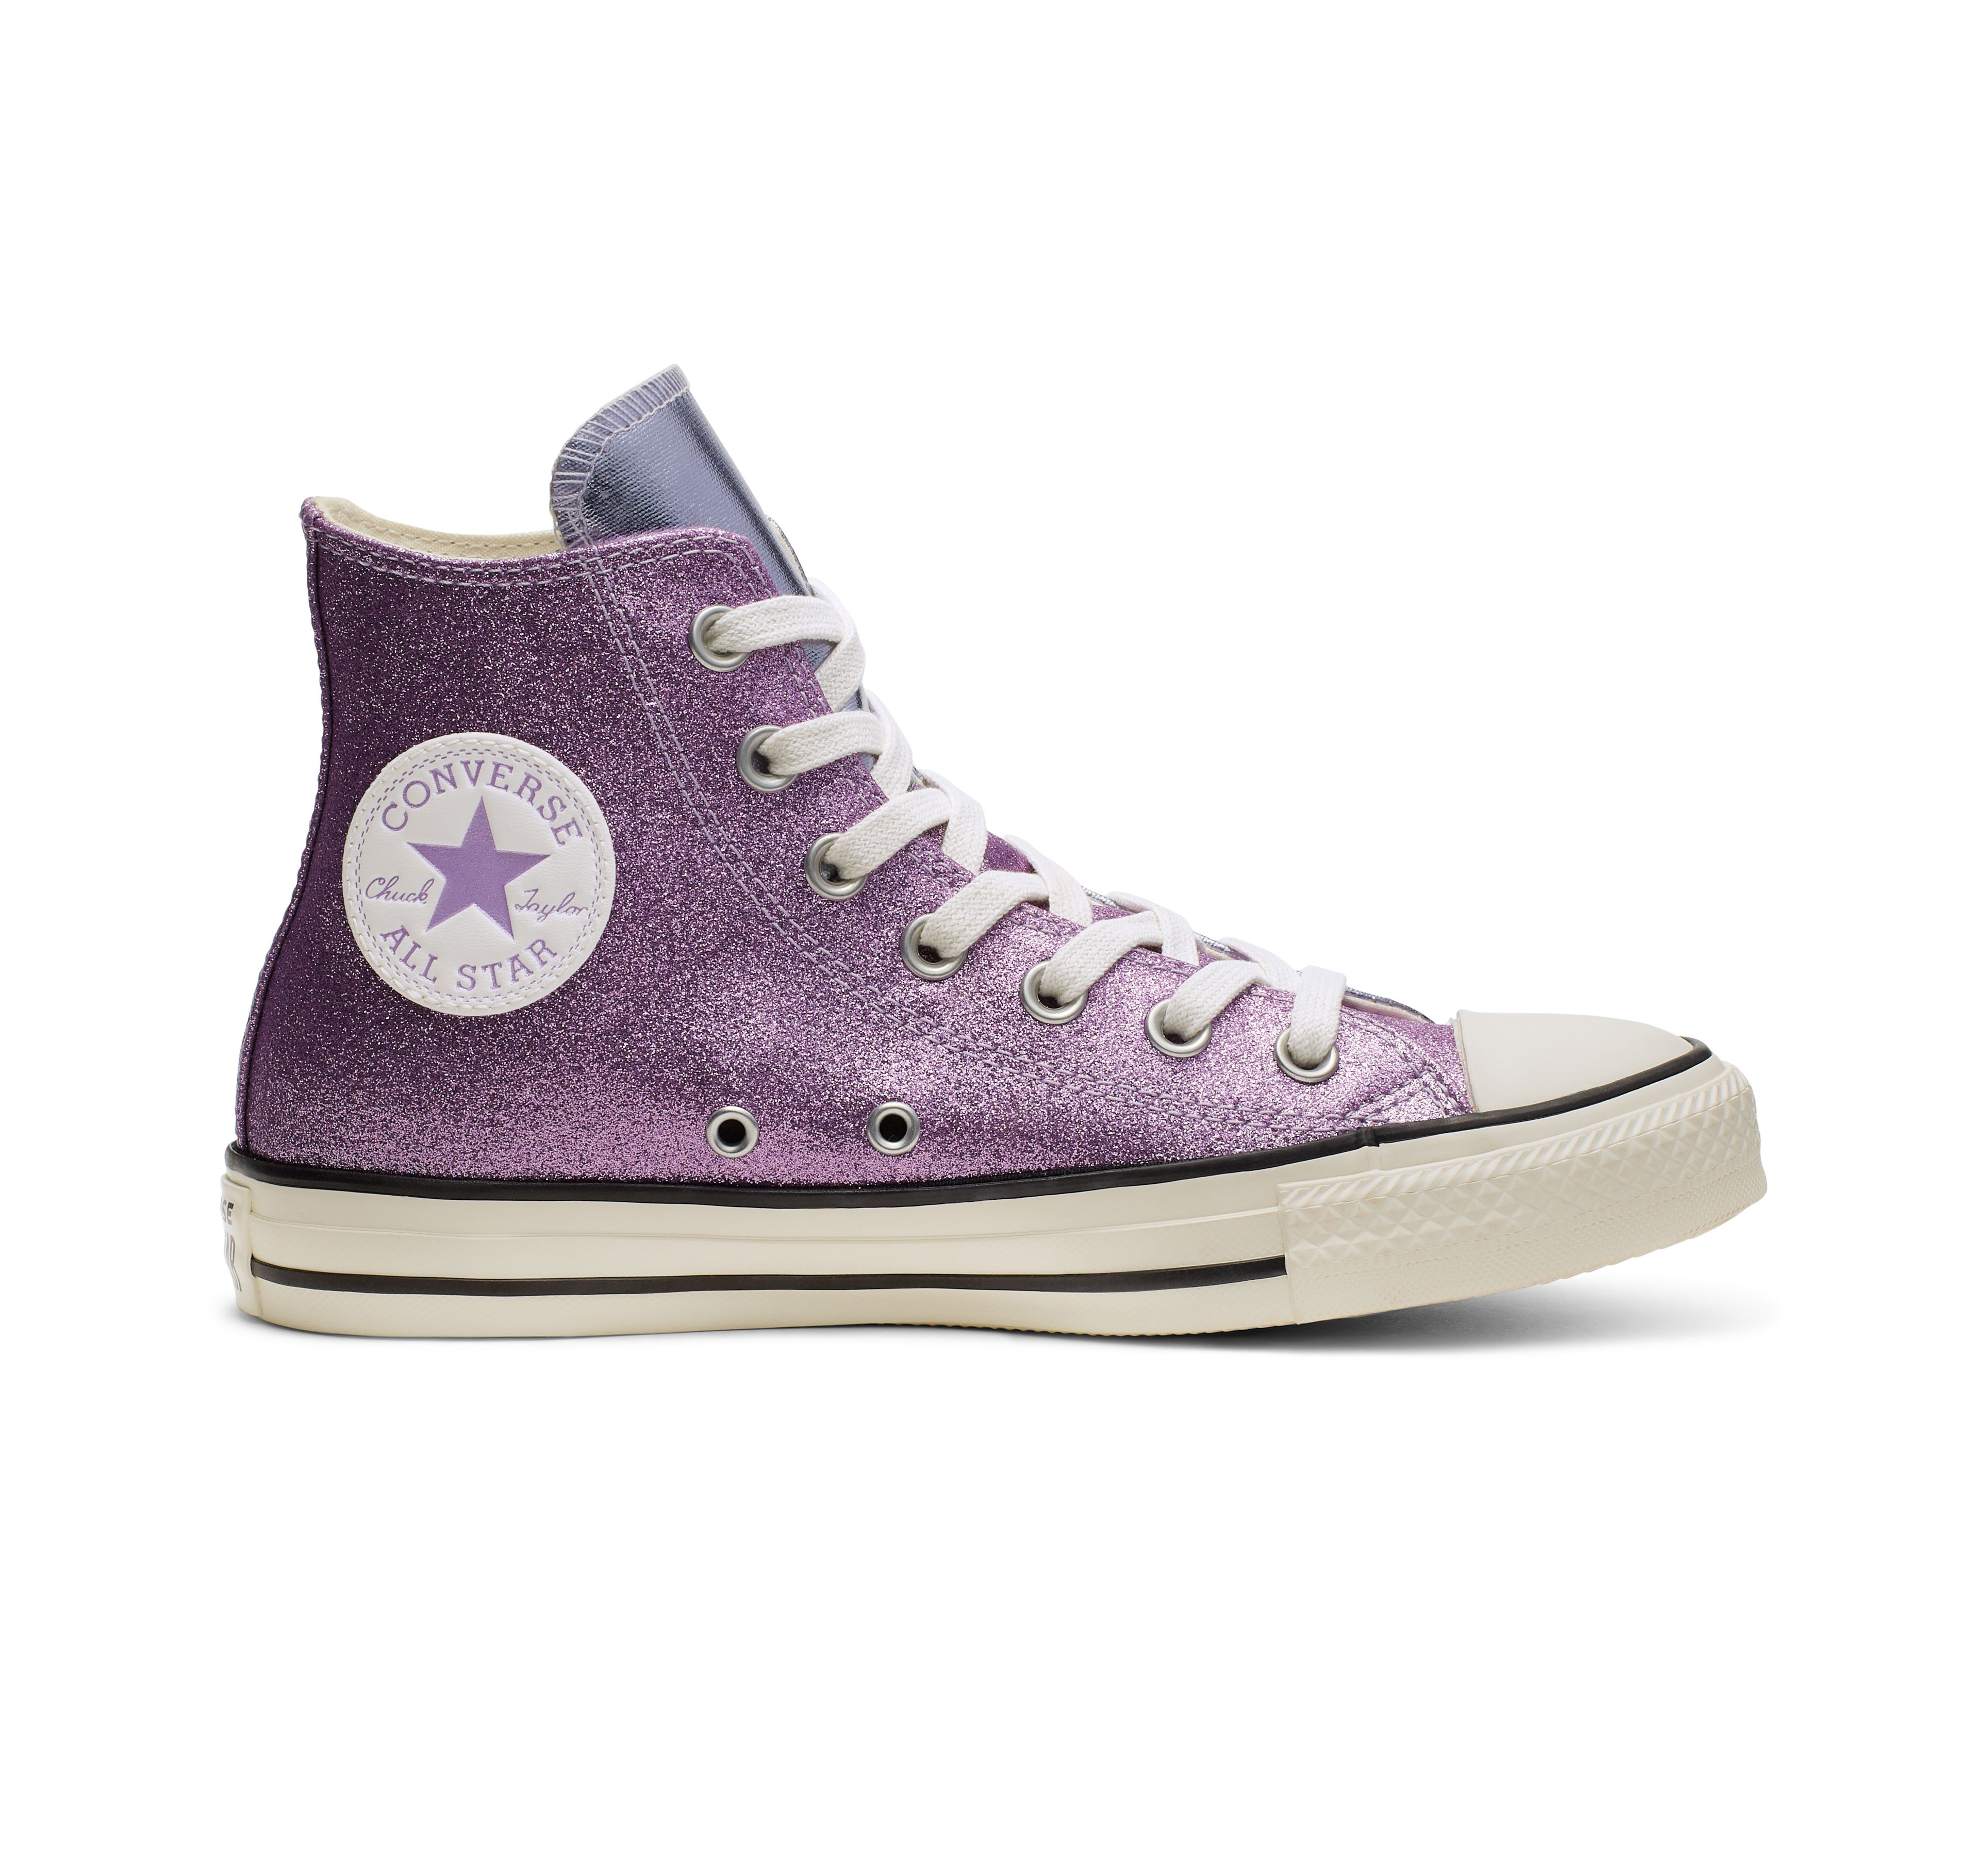 0057adc5839662 Chuck Taylor All Star Shiny Metal High Top in 2019